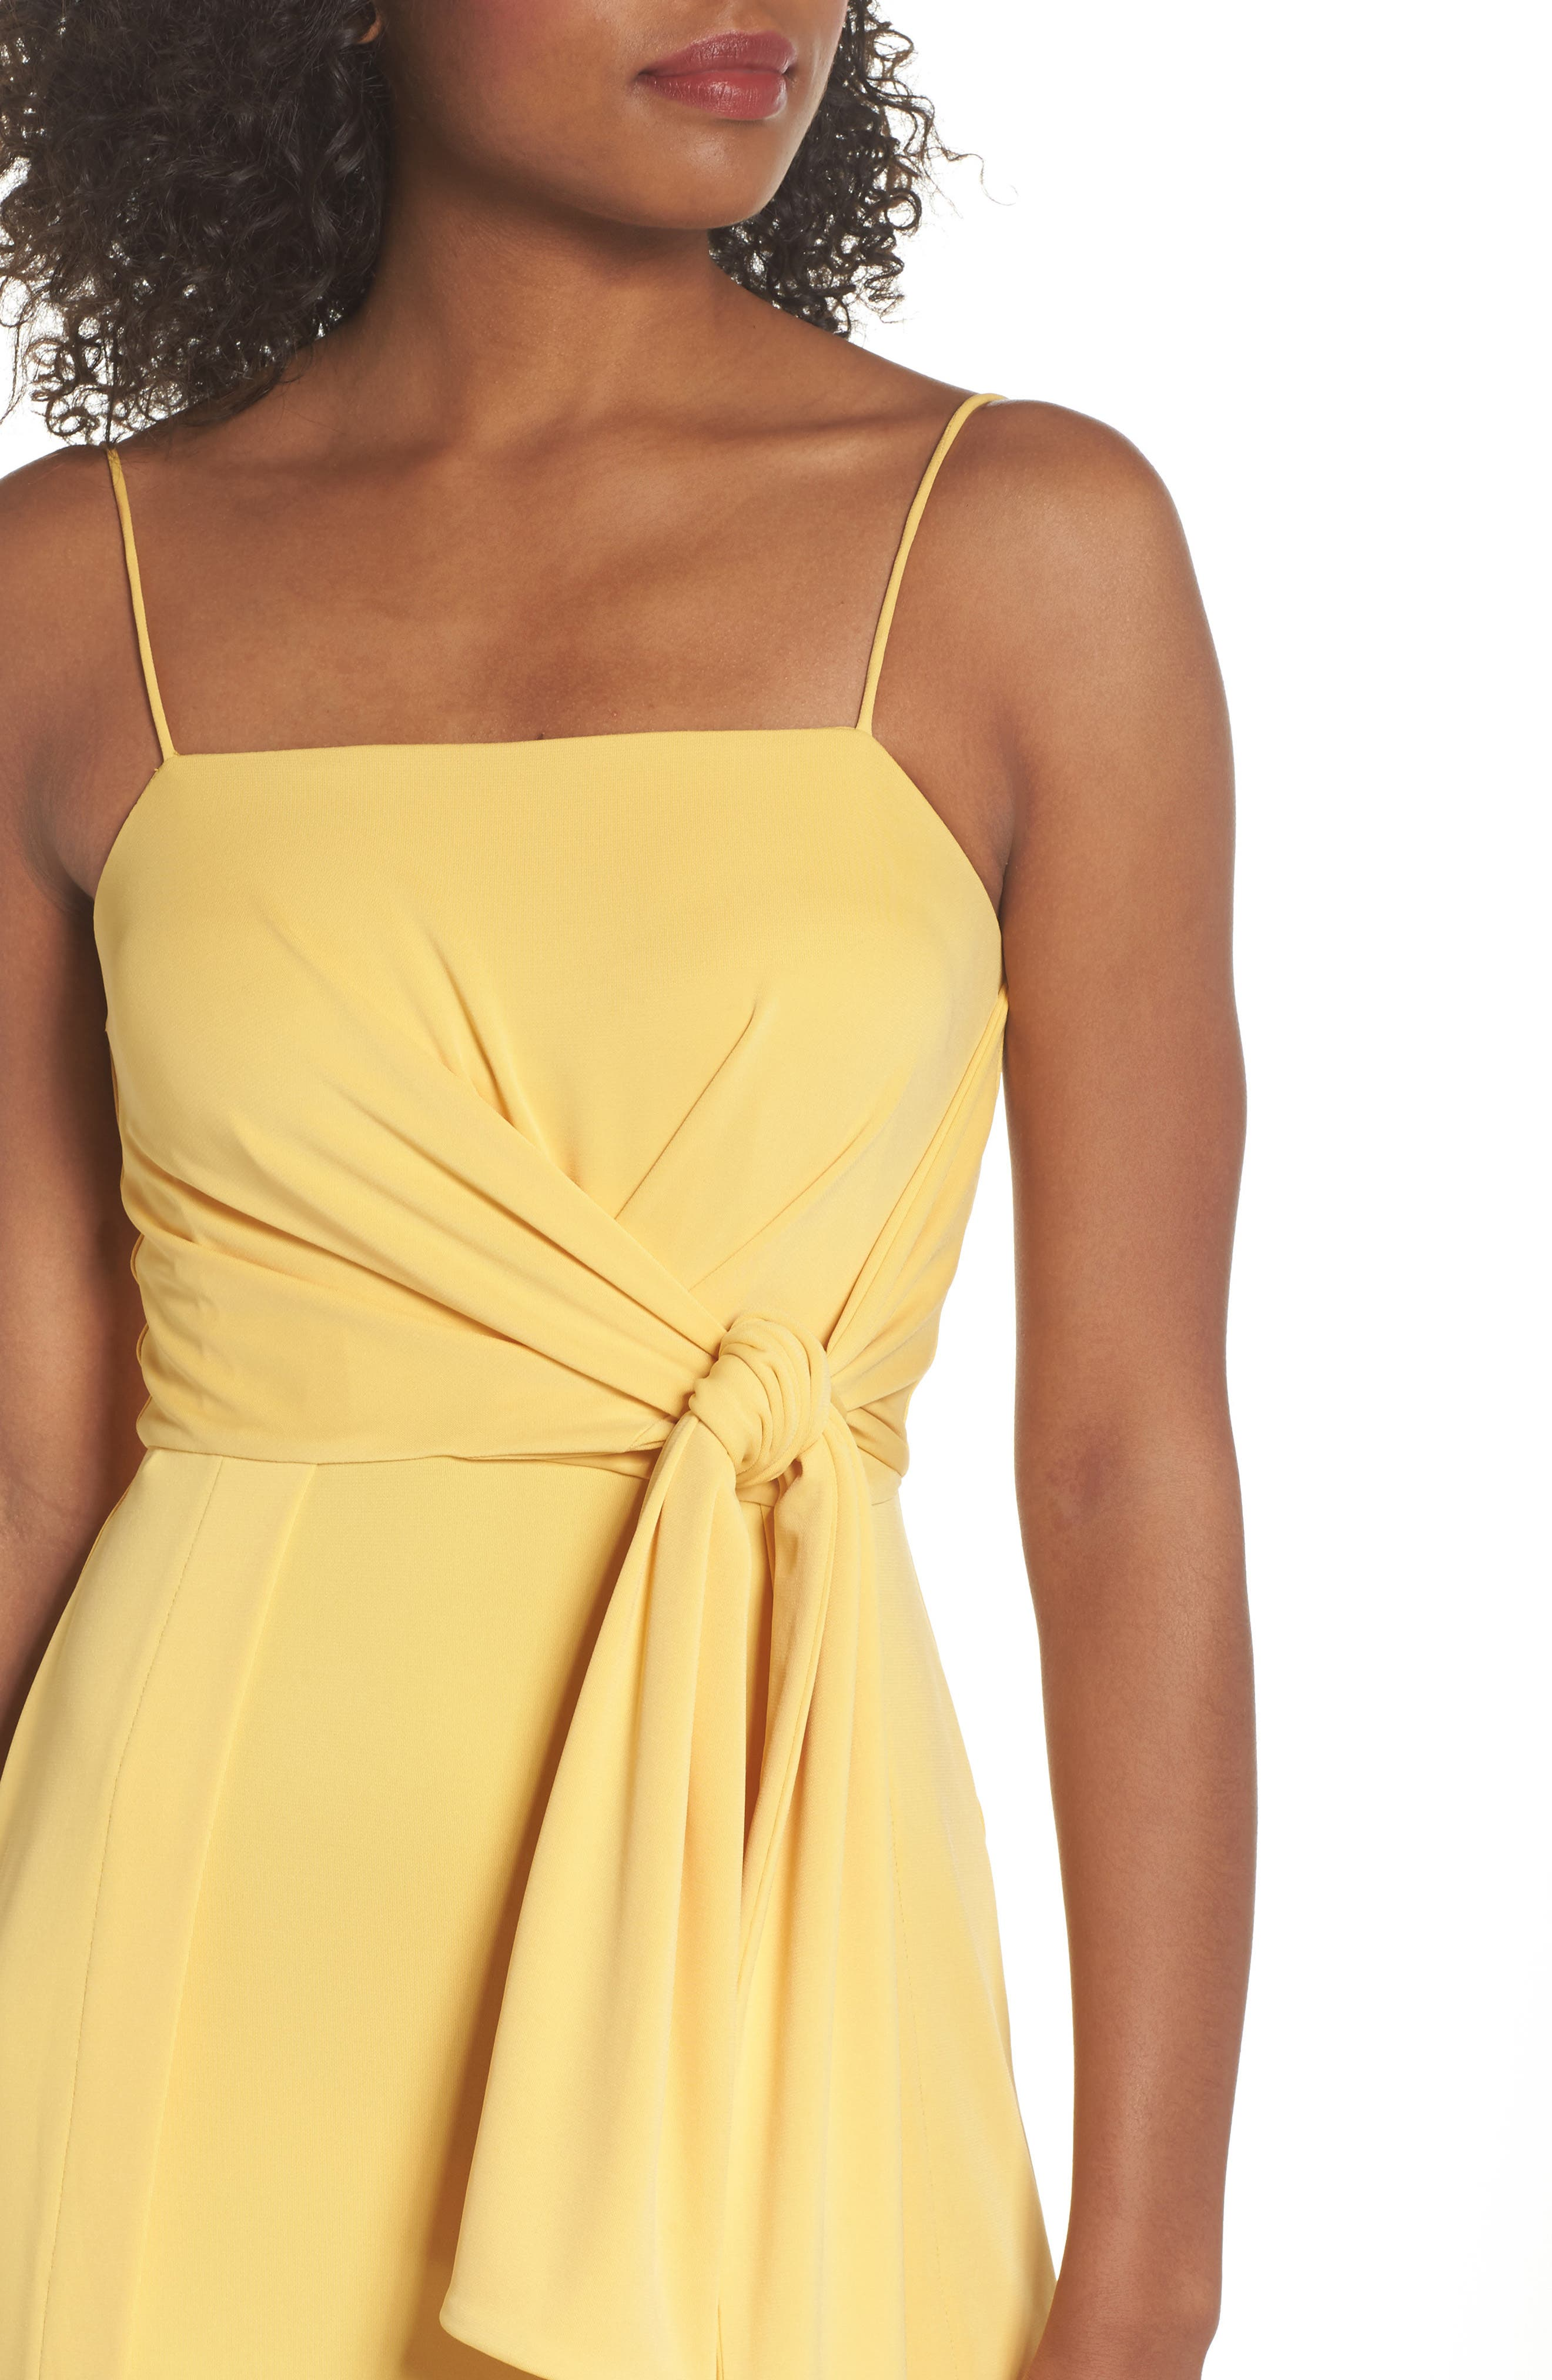 Recollect Slinky Side Tie Midi Dress,                             Alternate thumbnail 4, color,                             740